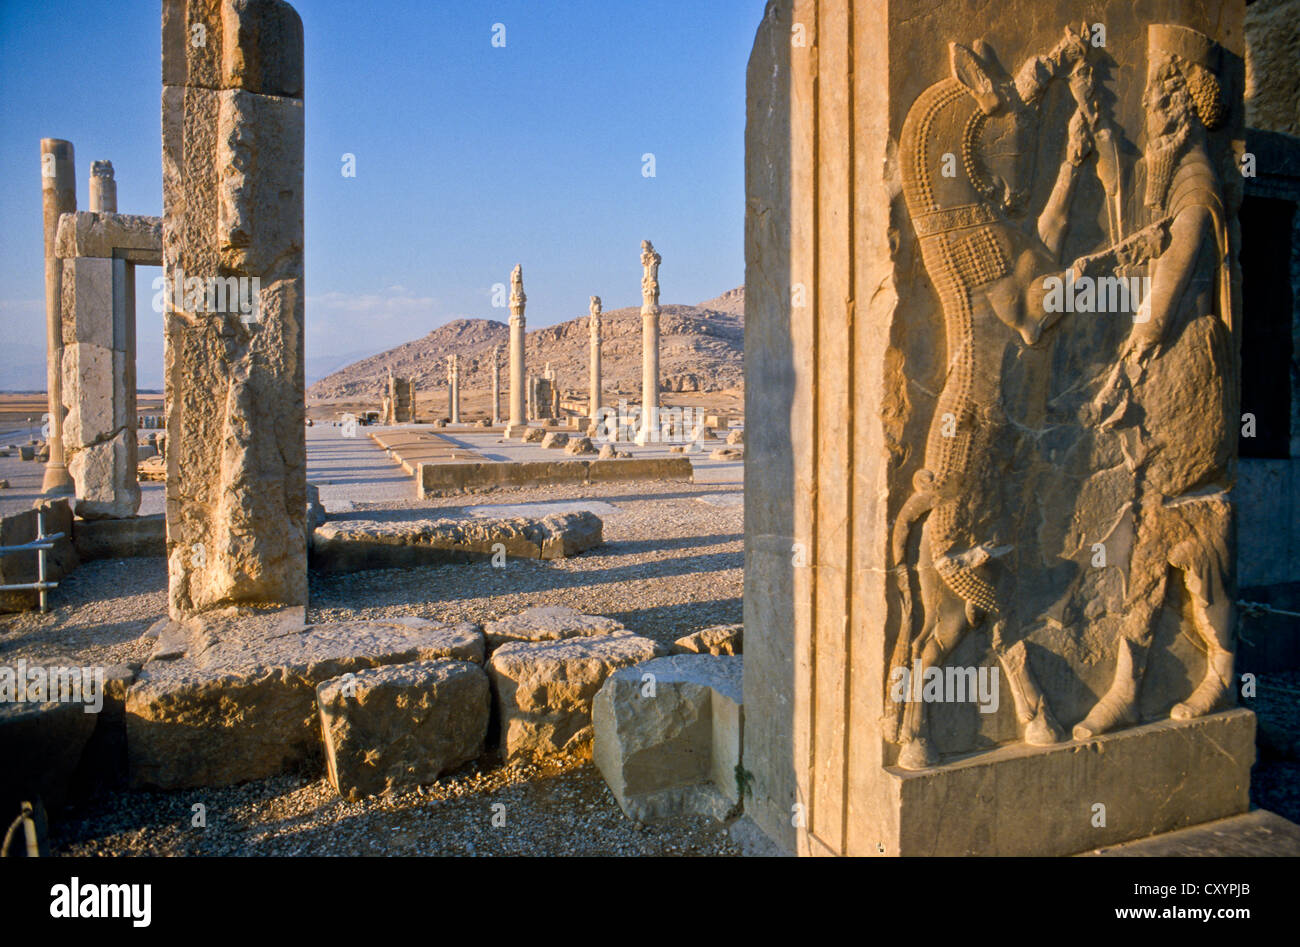 The Remains Of The Hall Of A Hundred Columns Persepolis Shiraz Stock Photo Alamy